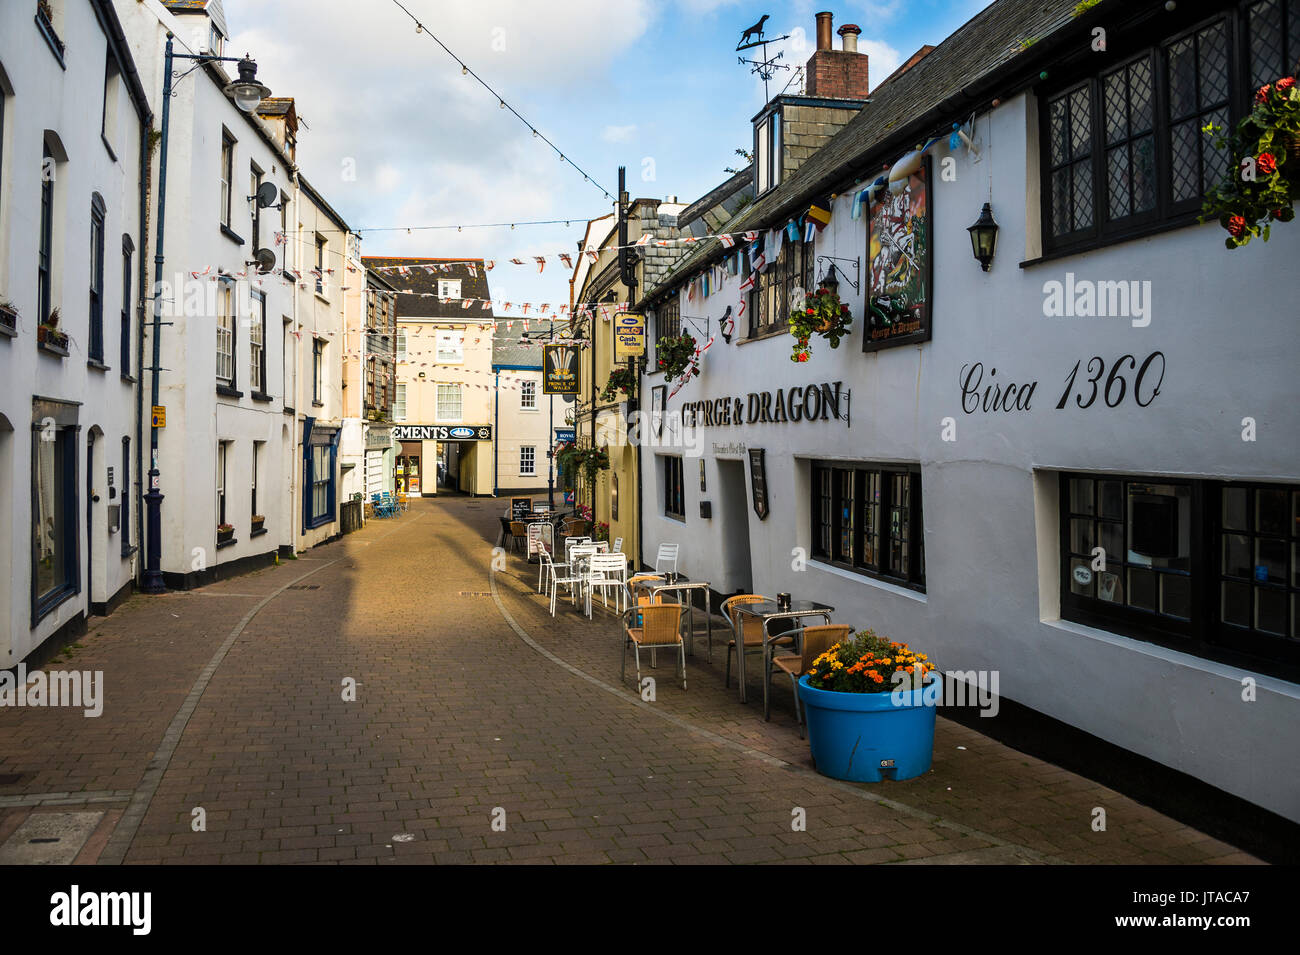 Picturesque harbour town of Ifracombe, North Devon, England, United Kingdom, Europe - Stock Image